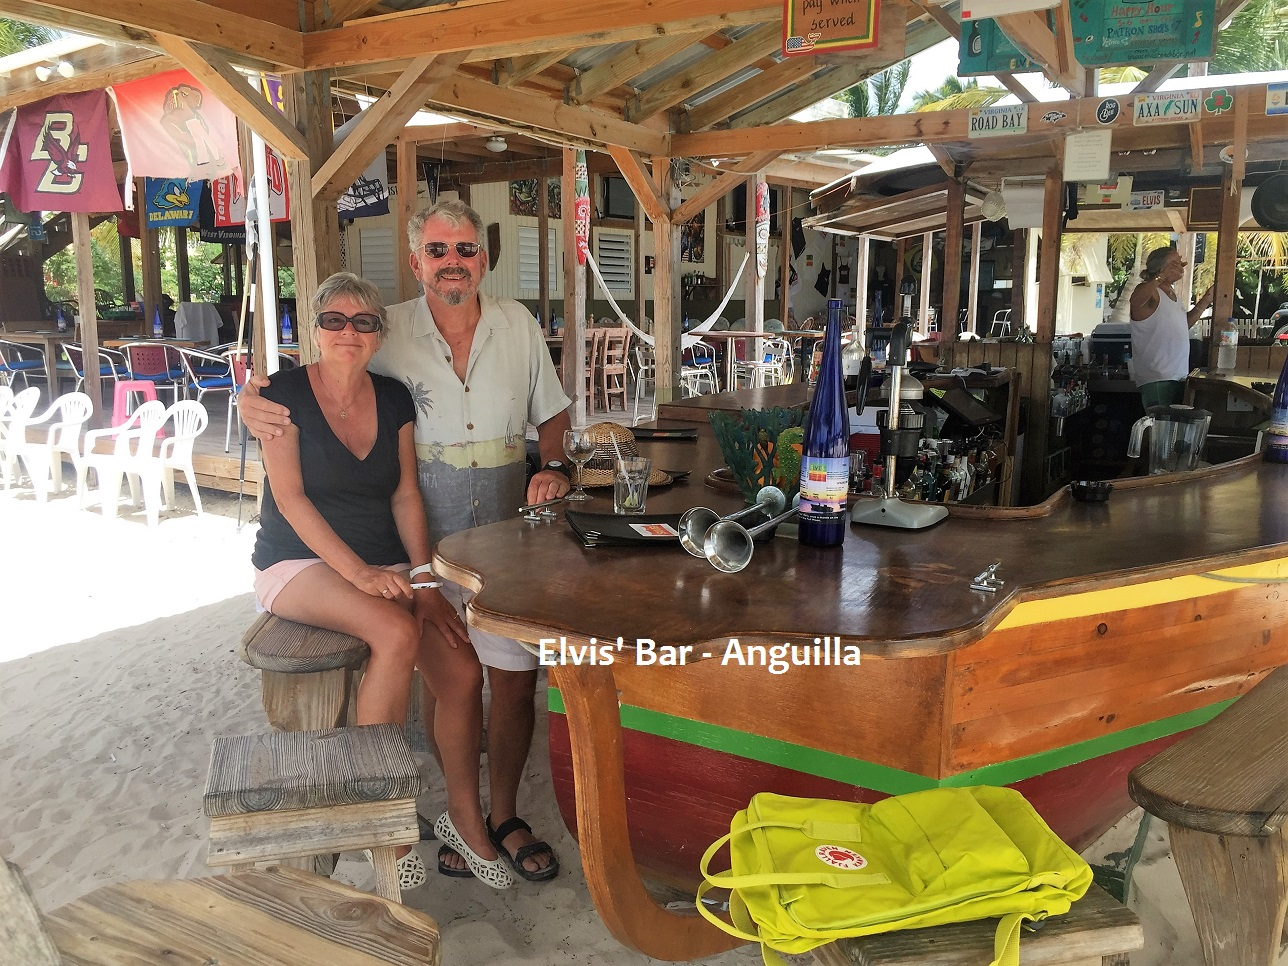 Elvis Bar Anguilla.JPG